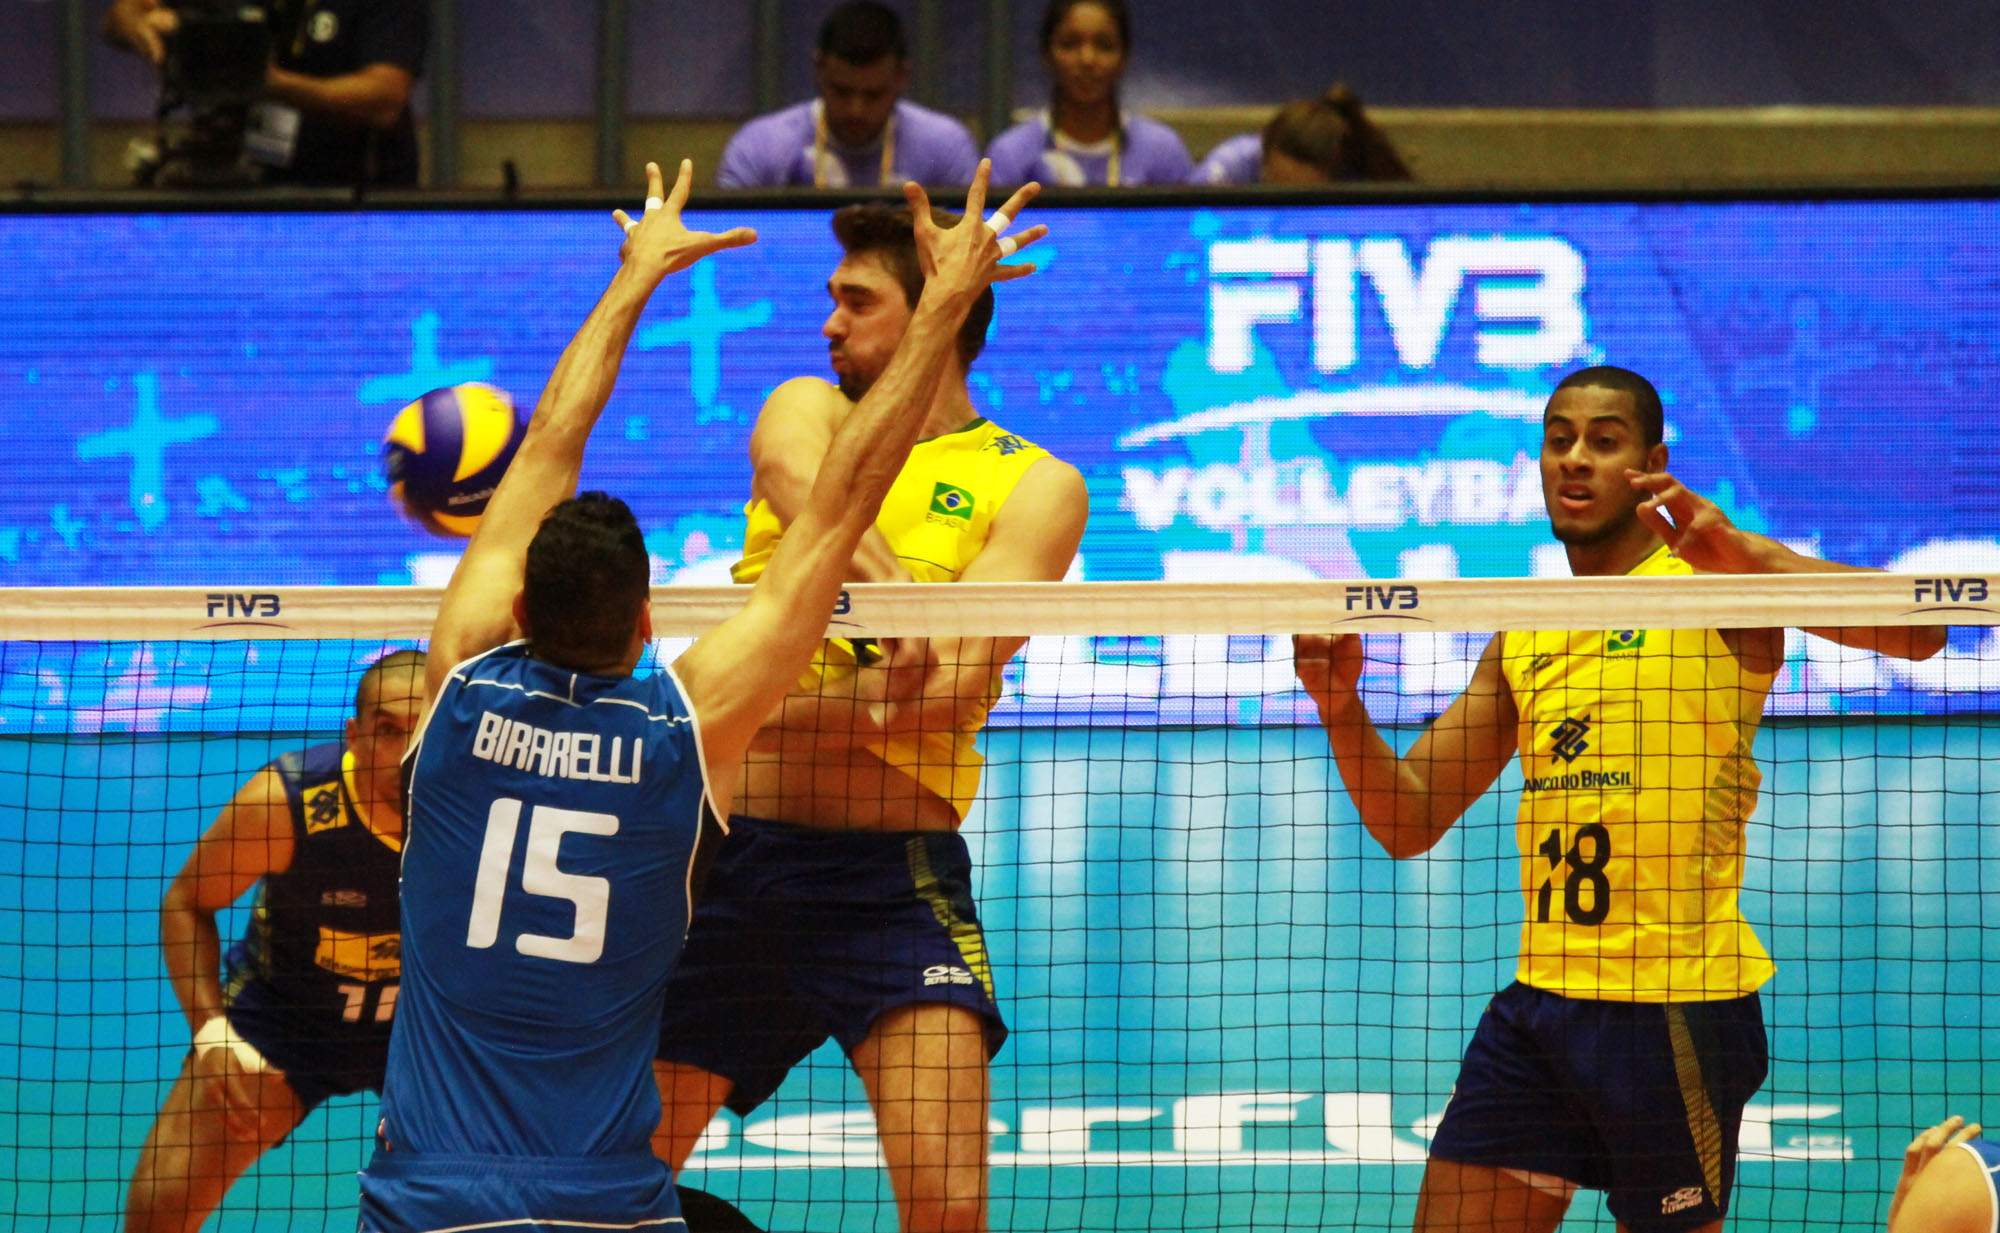 http://www.fivb.org/Vis2009/Images/GetImage.asmx?No=201489984&maxSize=960